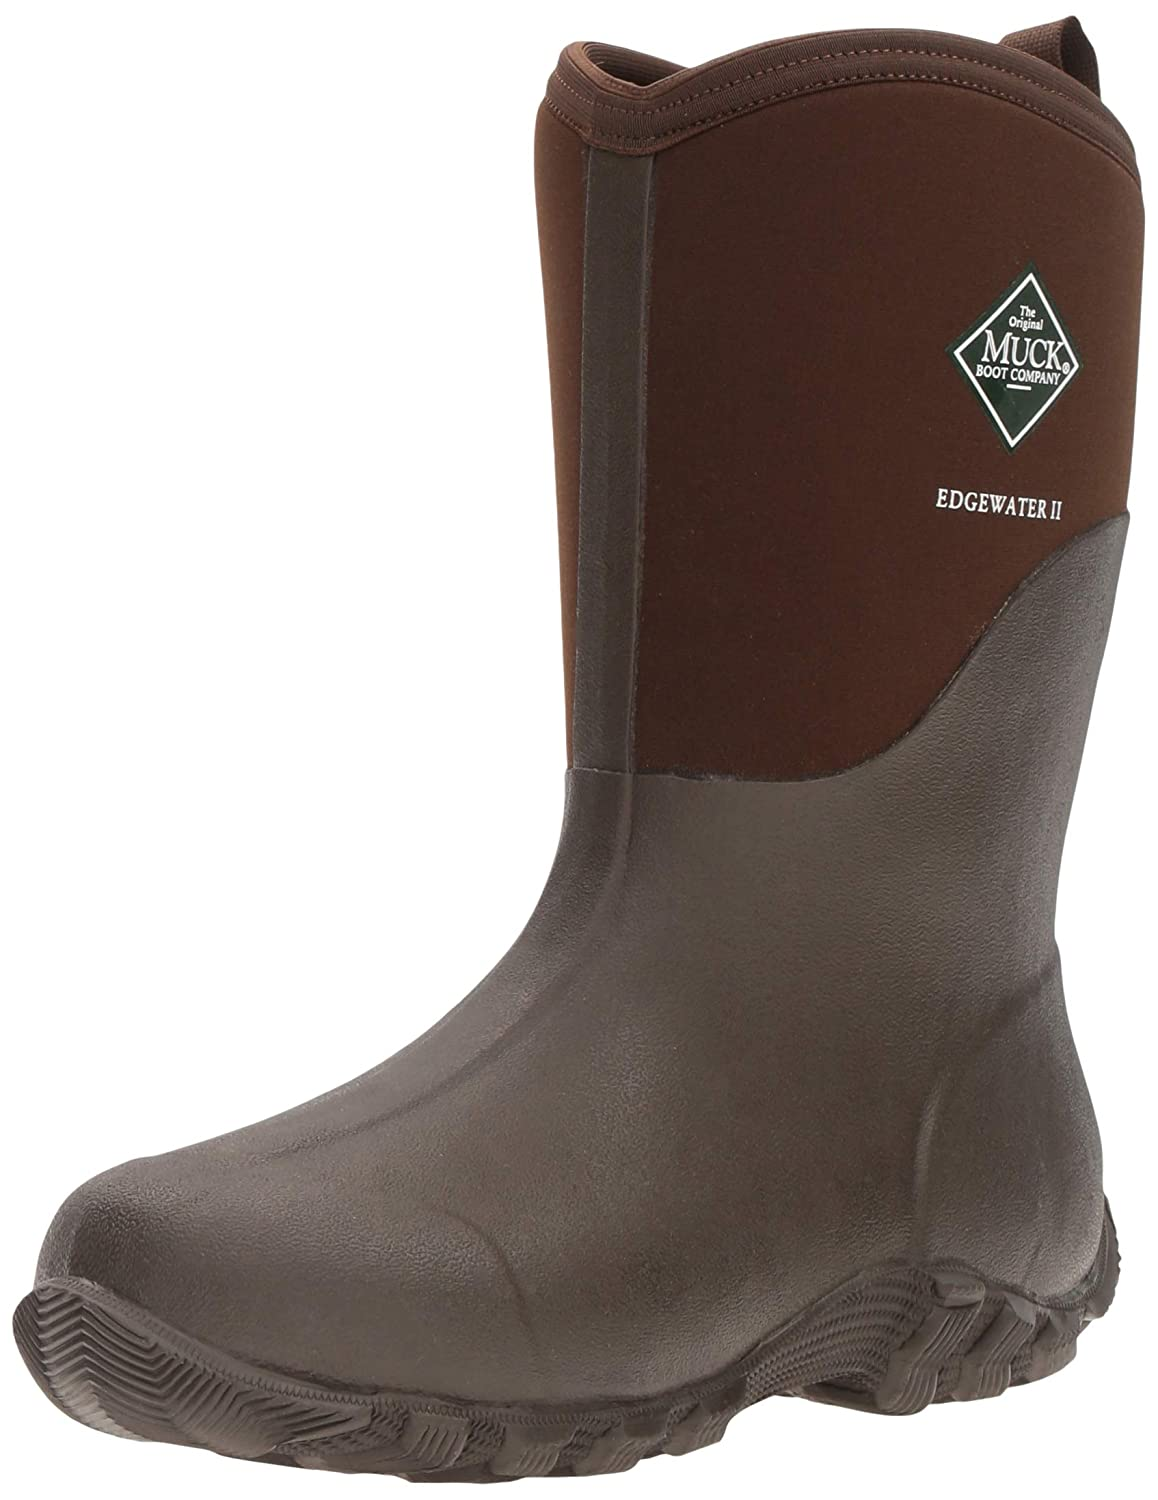 Muck Boots Edgewater Ll Multi-Purpose Mid-Height Men's Rubber Boot